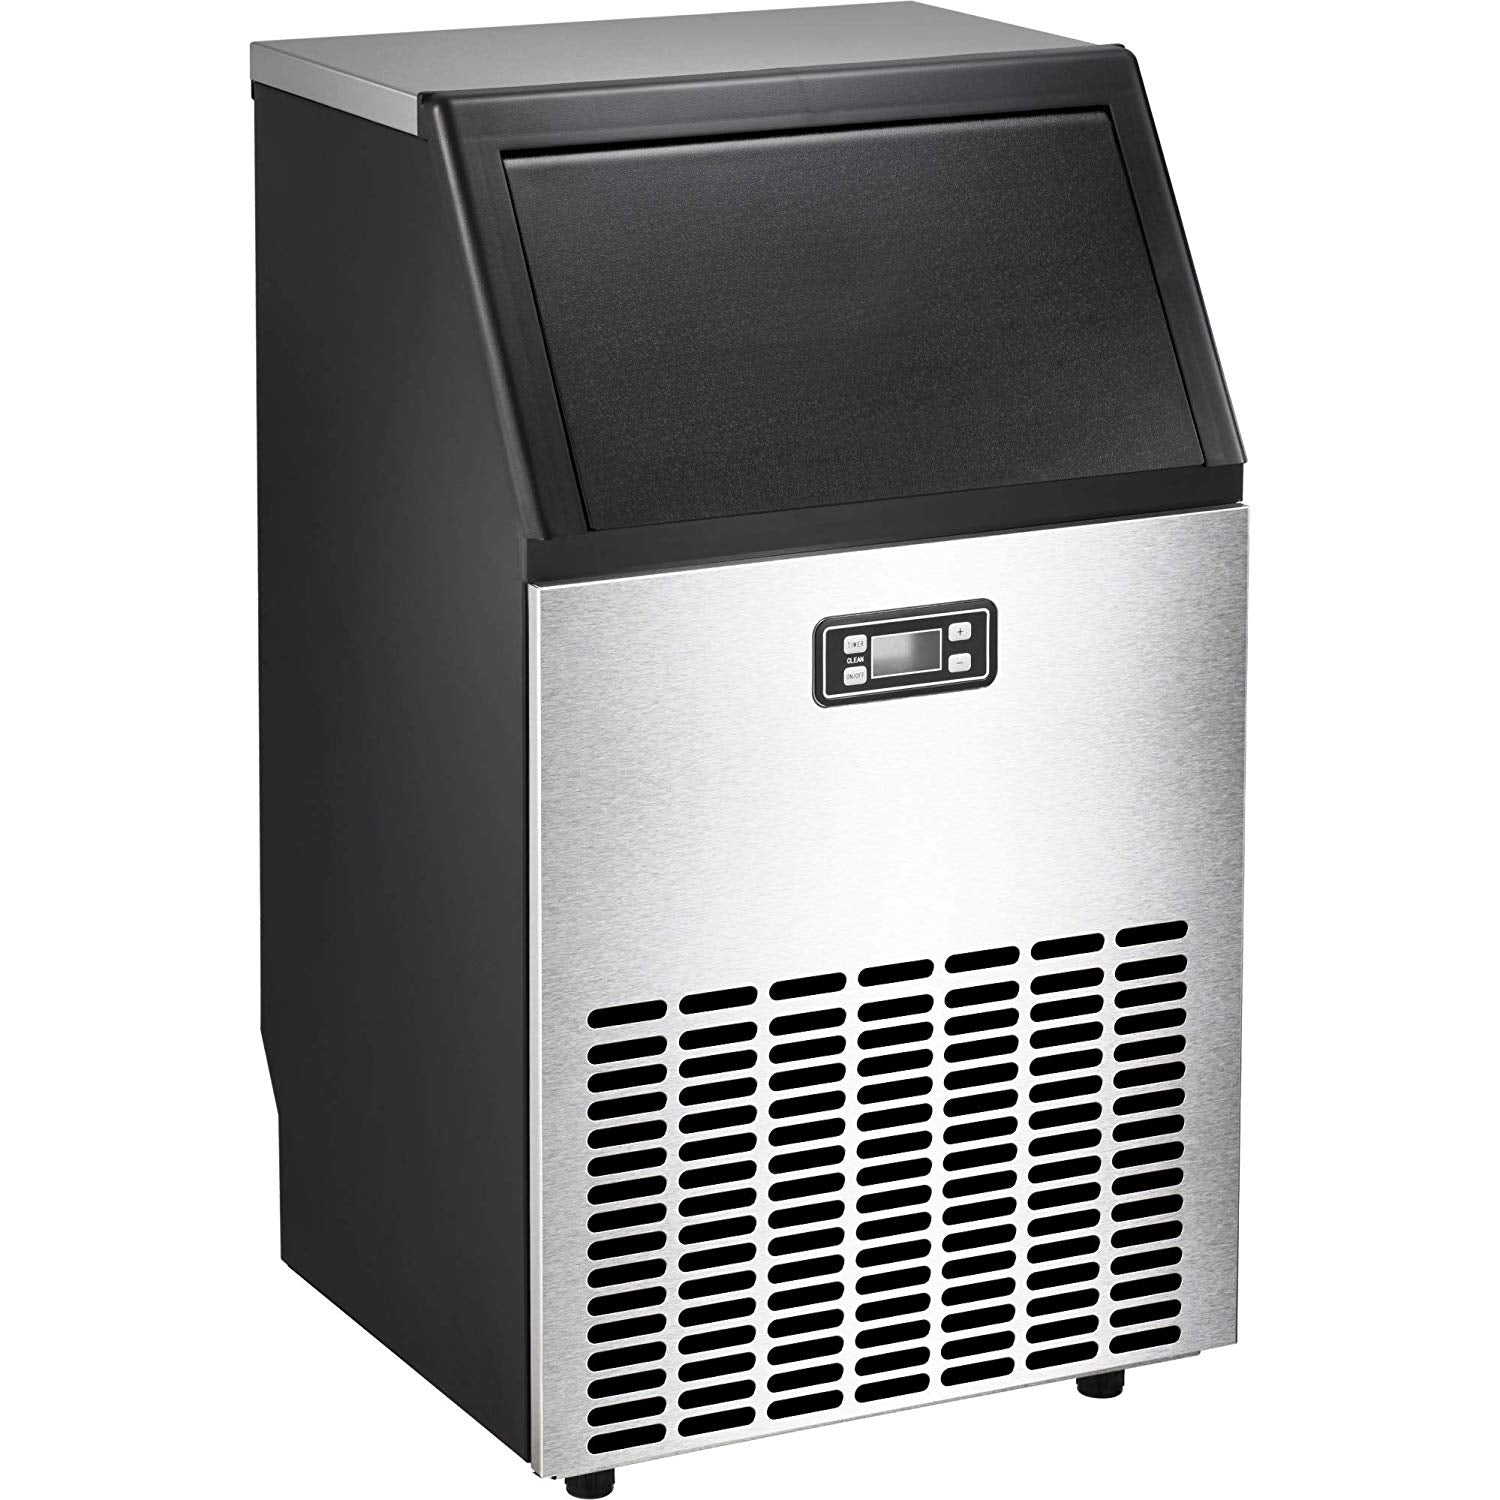 Stainless Steel Ice Maker Machine for Countertop - Makes 100Lbs of Ice Per 24Hours,Ideal Ice for Restaurant/Bar/Coffee Shop with Ice Shovel